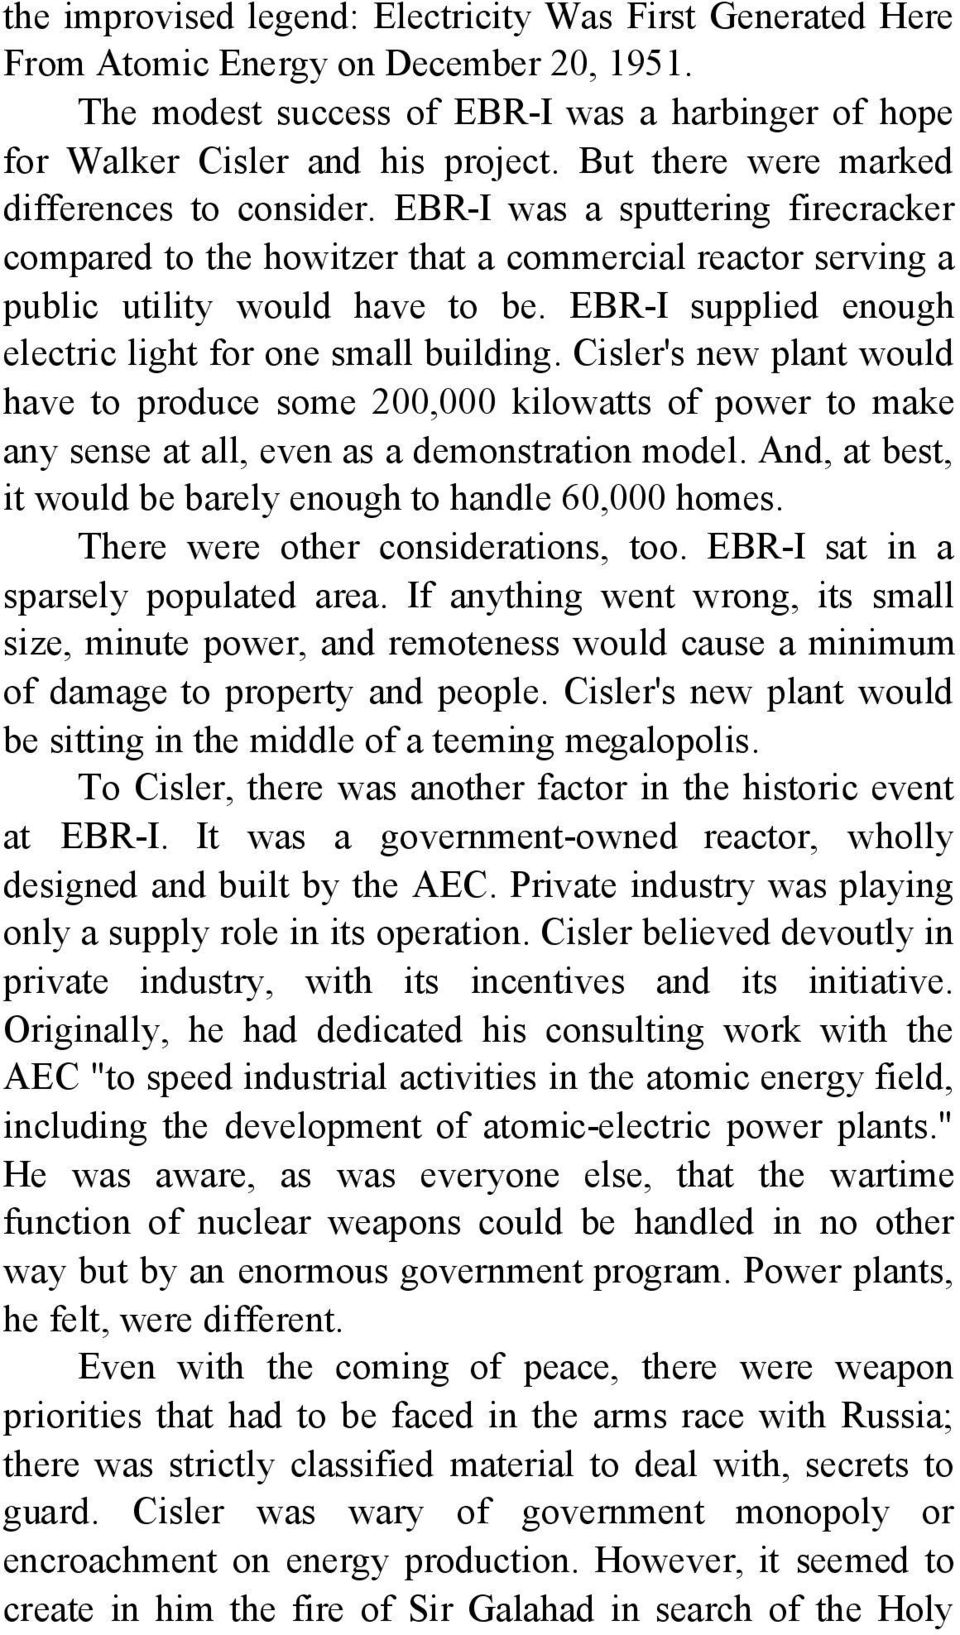 EBR-I supplied enough electric light for one small building. Cisler's new plant would have to produce some 200,000 kilowatts of power to make any sense at all, even as a demonstration model.